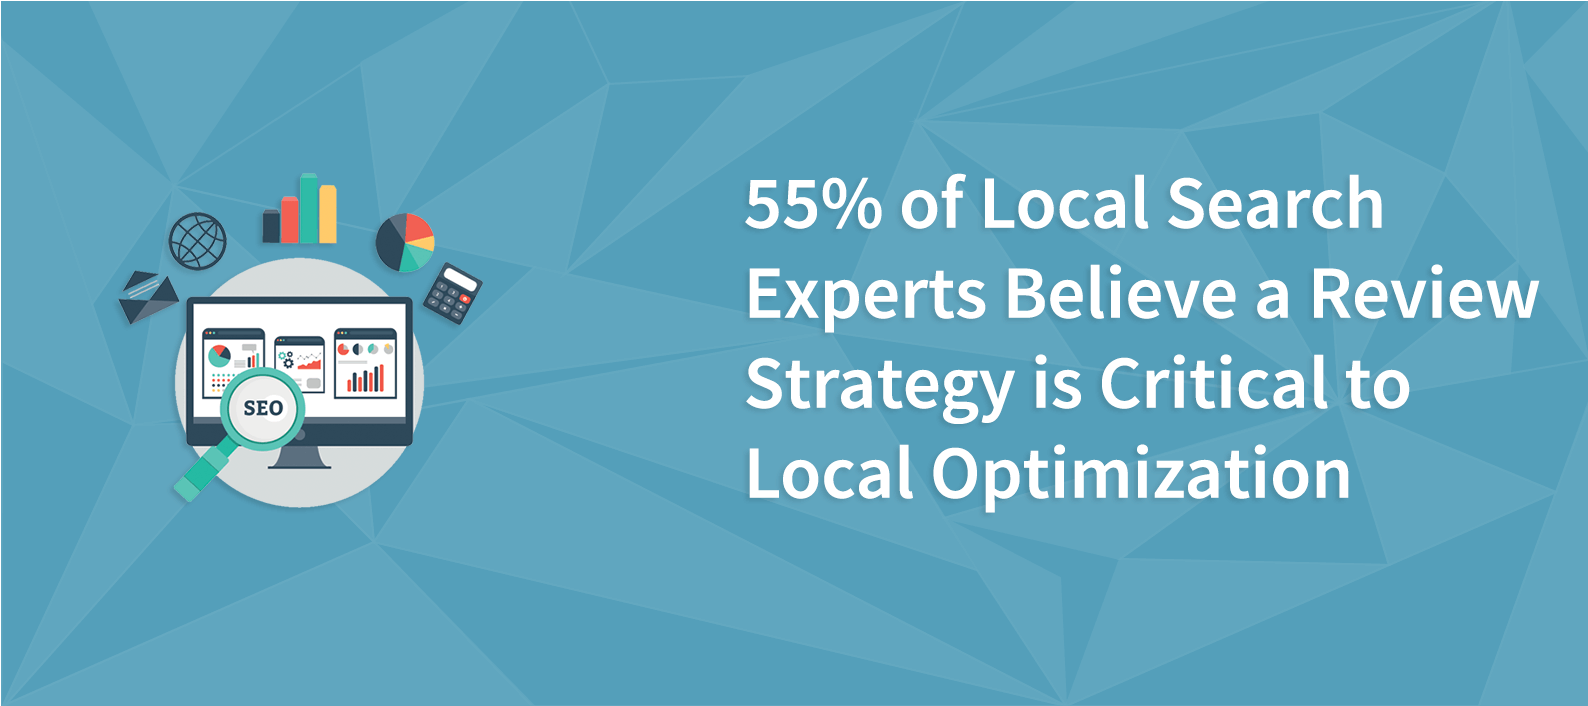 55% of Local Search Experts Believe a Review Strategy is Critical to Local Optimization